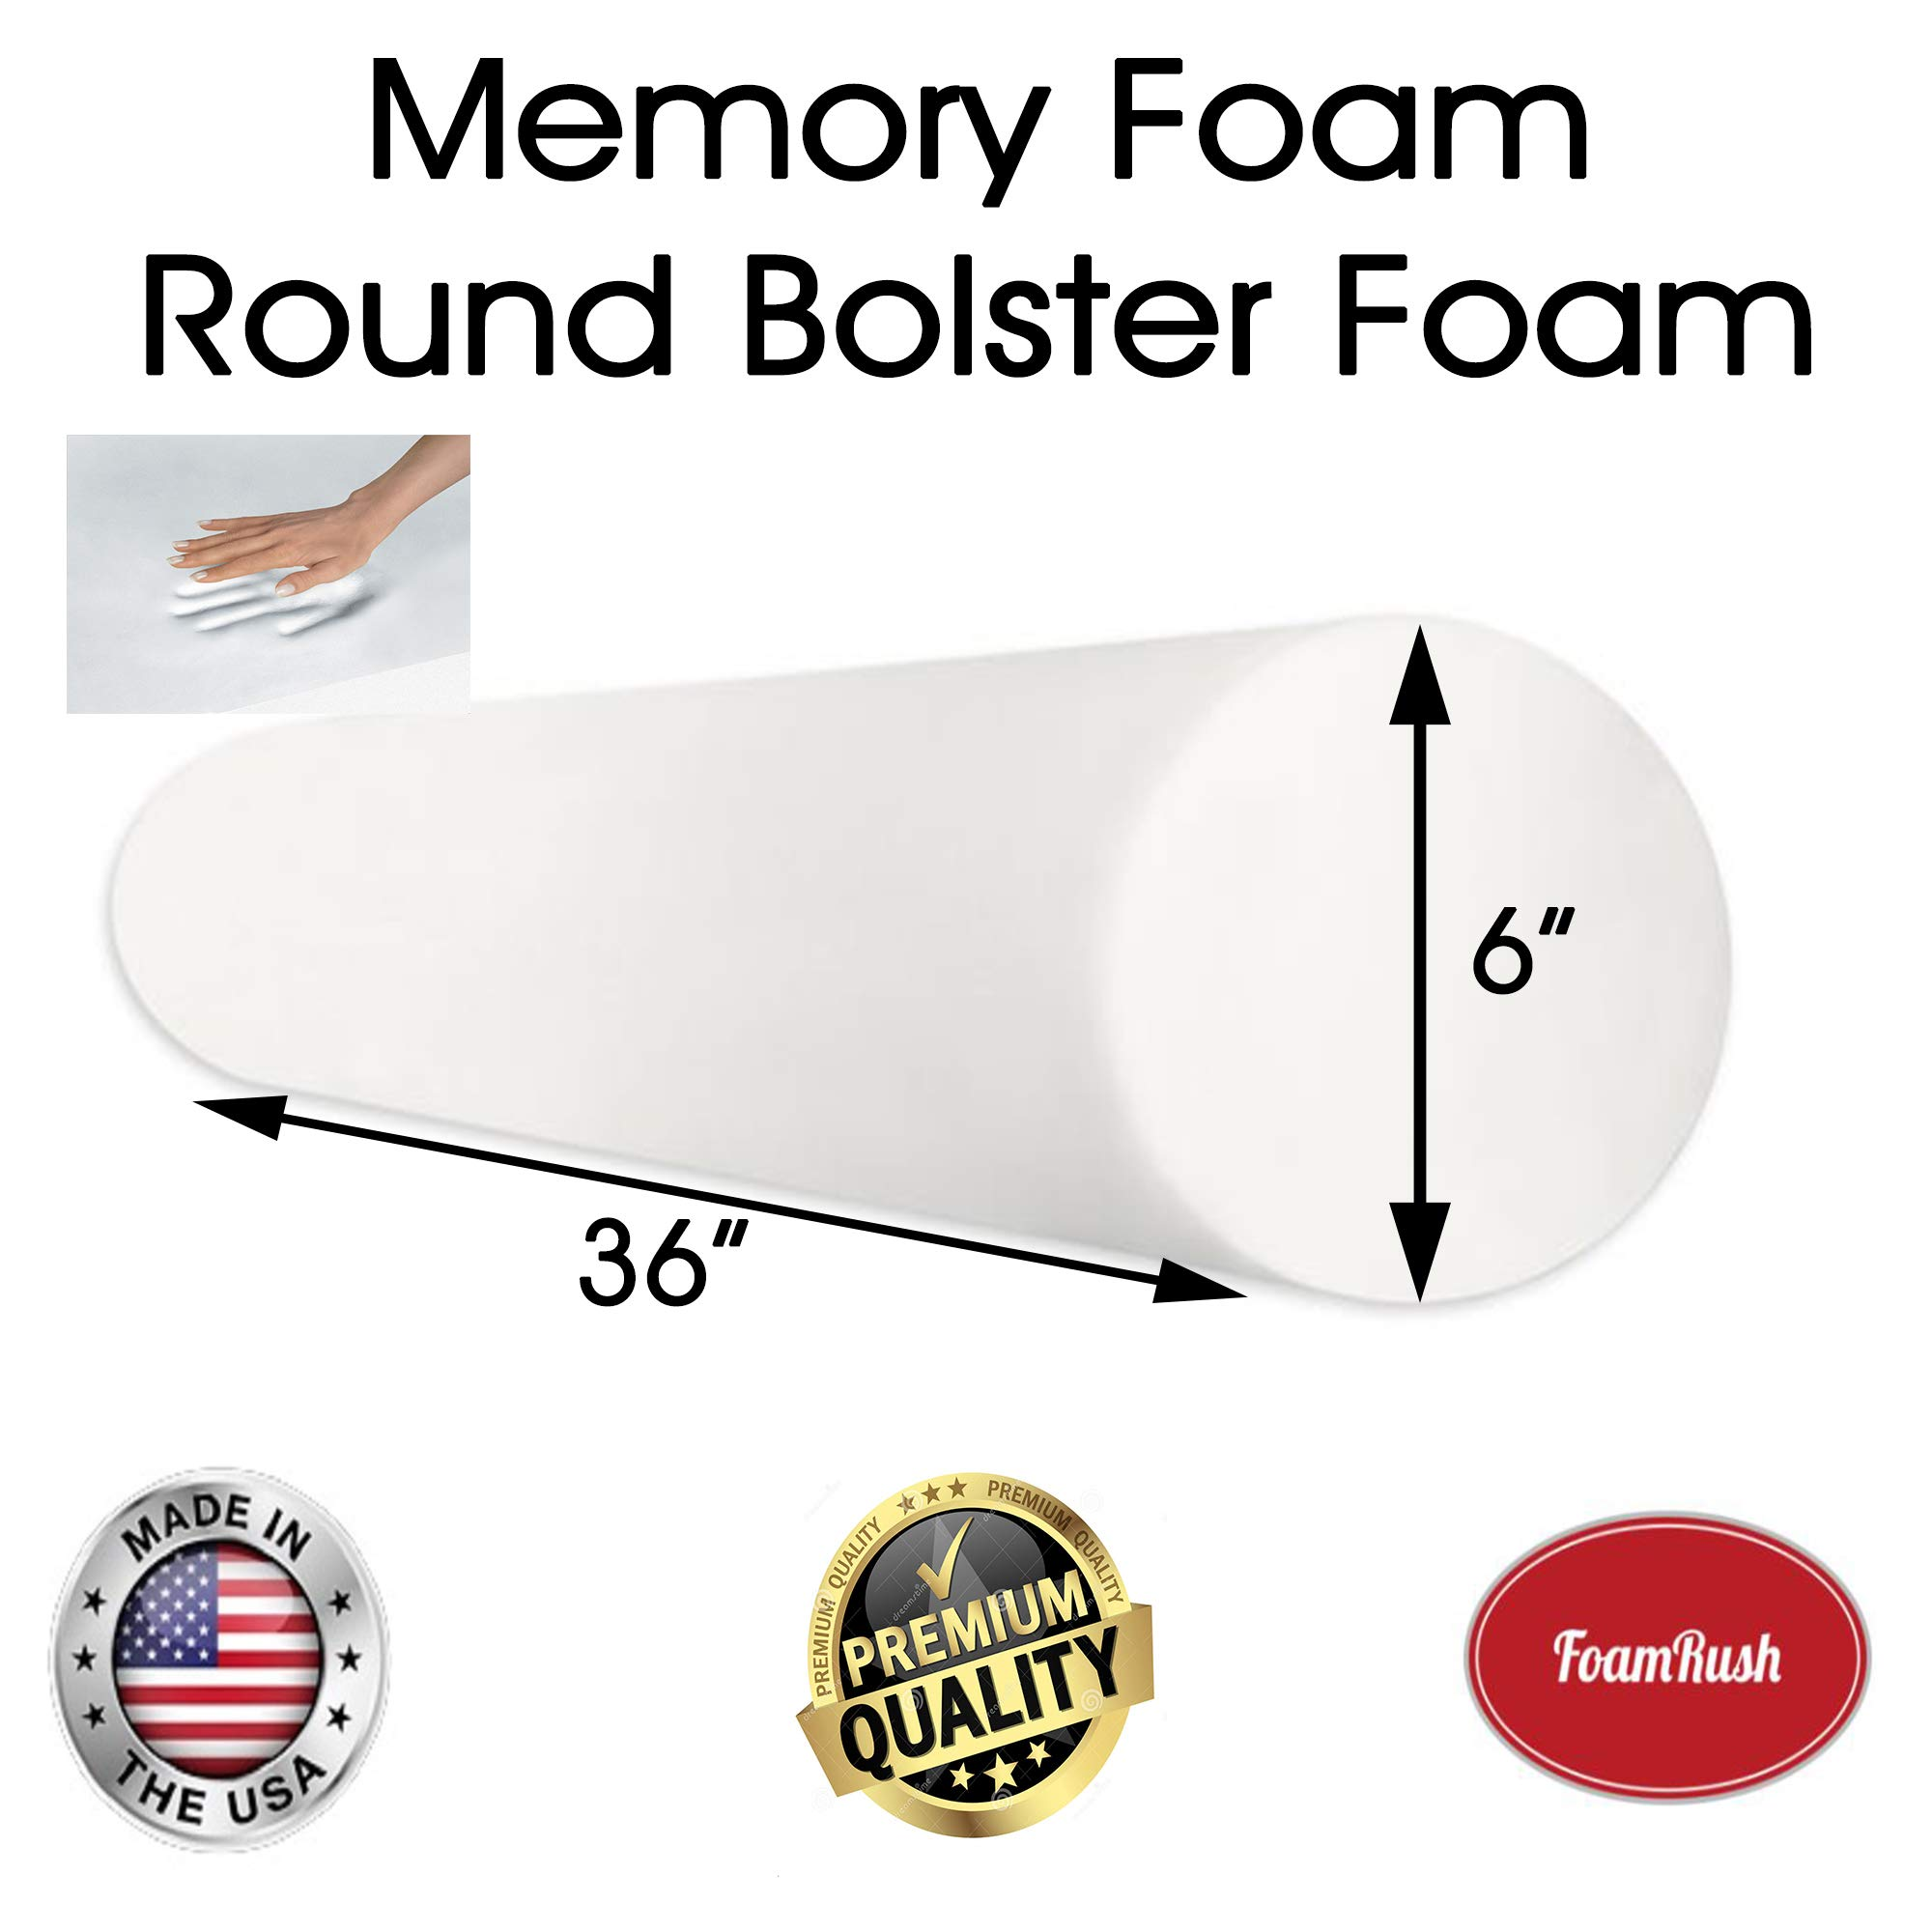 FoamRush 6'' Diameter x 36'' Long Premium Quality Round Bolster Memory Foam Roll Insert Replacement (Ideal for Home Accent Décor Positioning and General Fitness) Made in USA